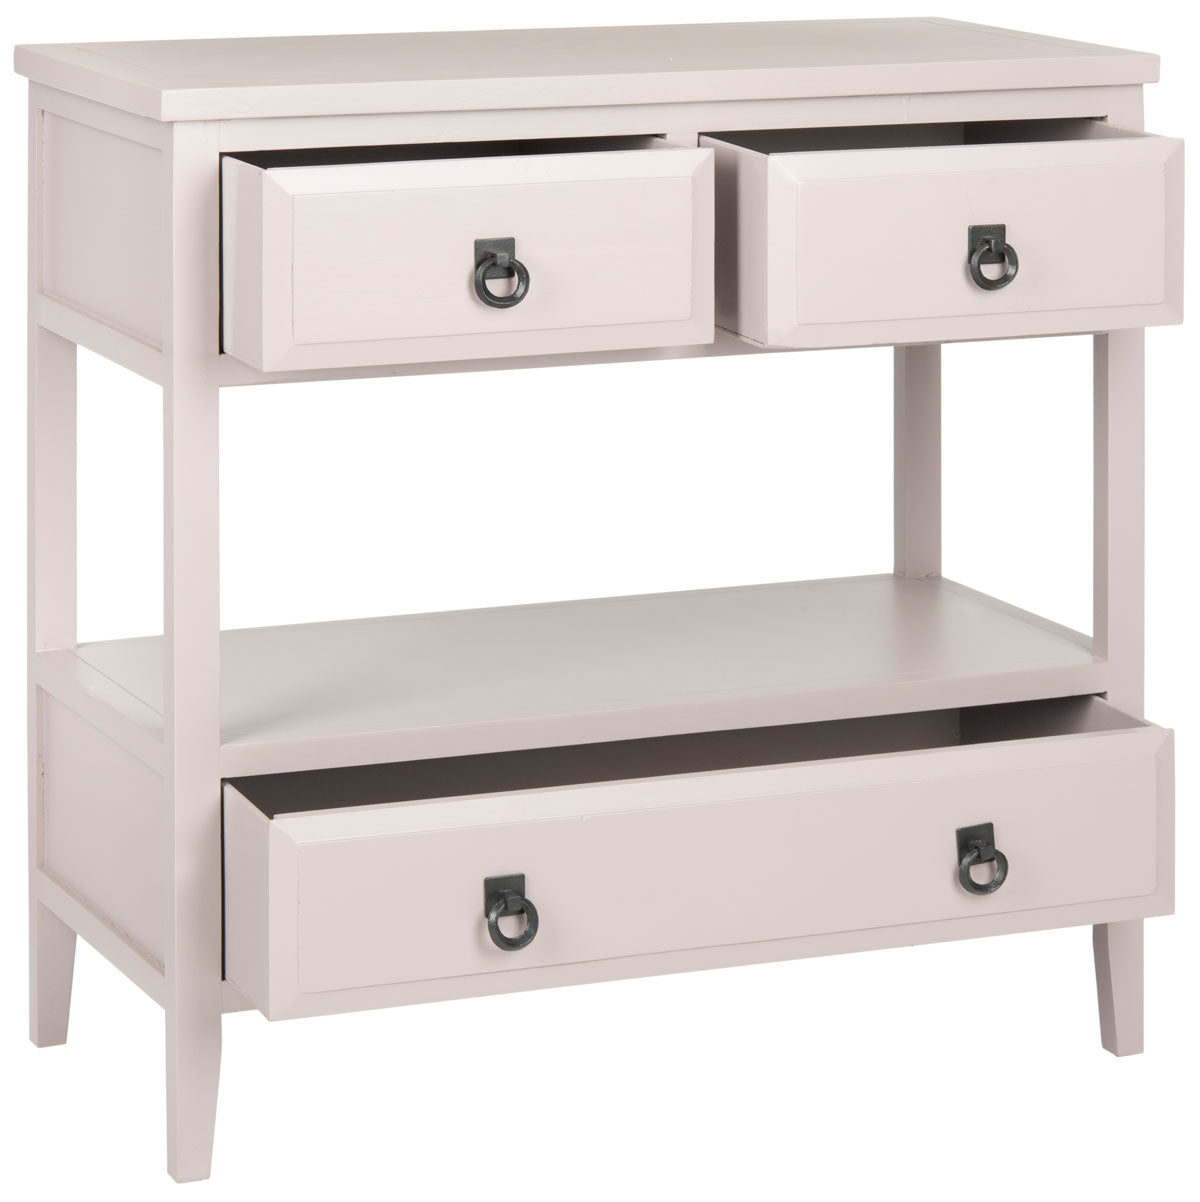 Branson 3 Drawer Sideboard.